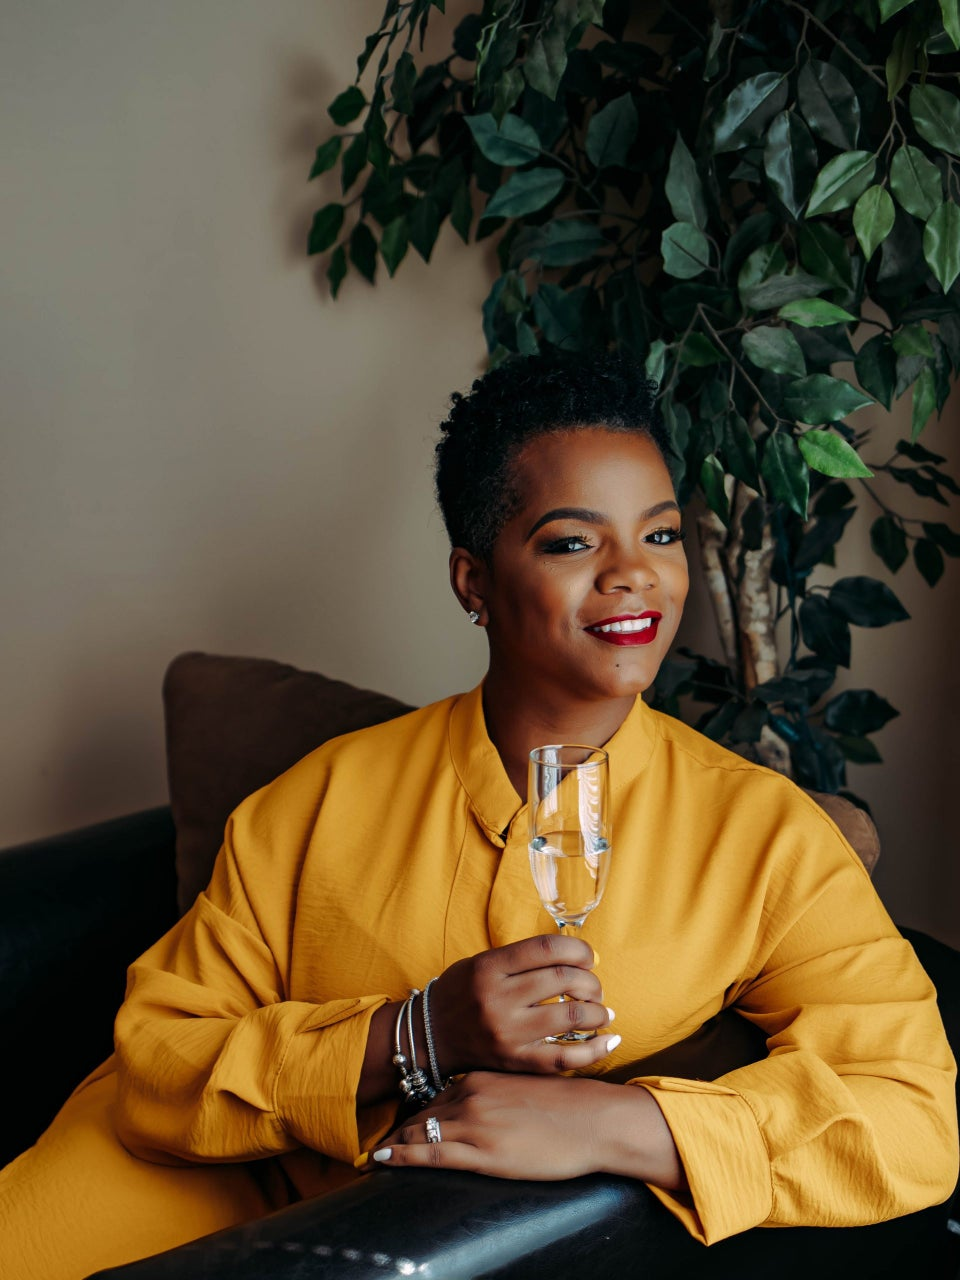 She Wanted A Healthier Spirit, Now She's The First Black Woman To Lead A Tequila Brand